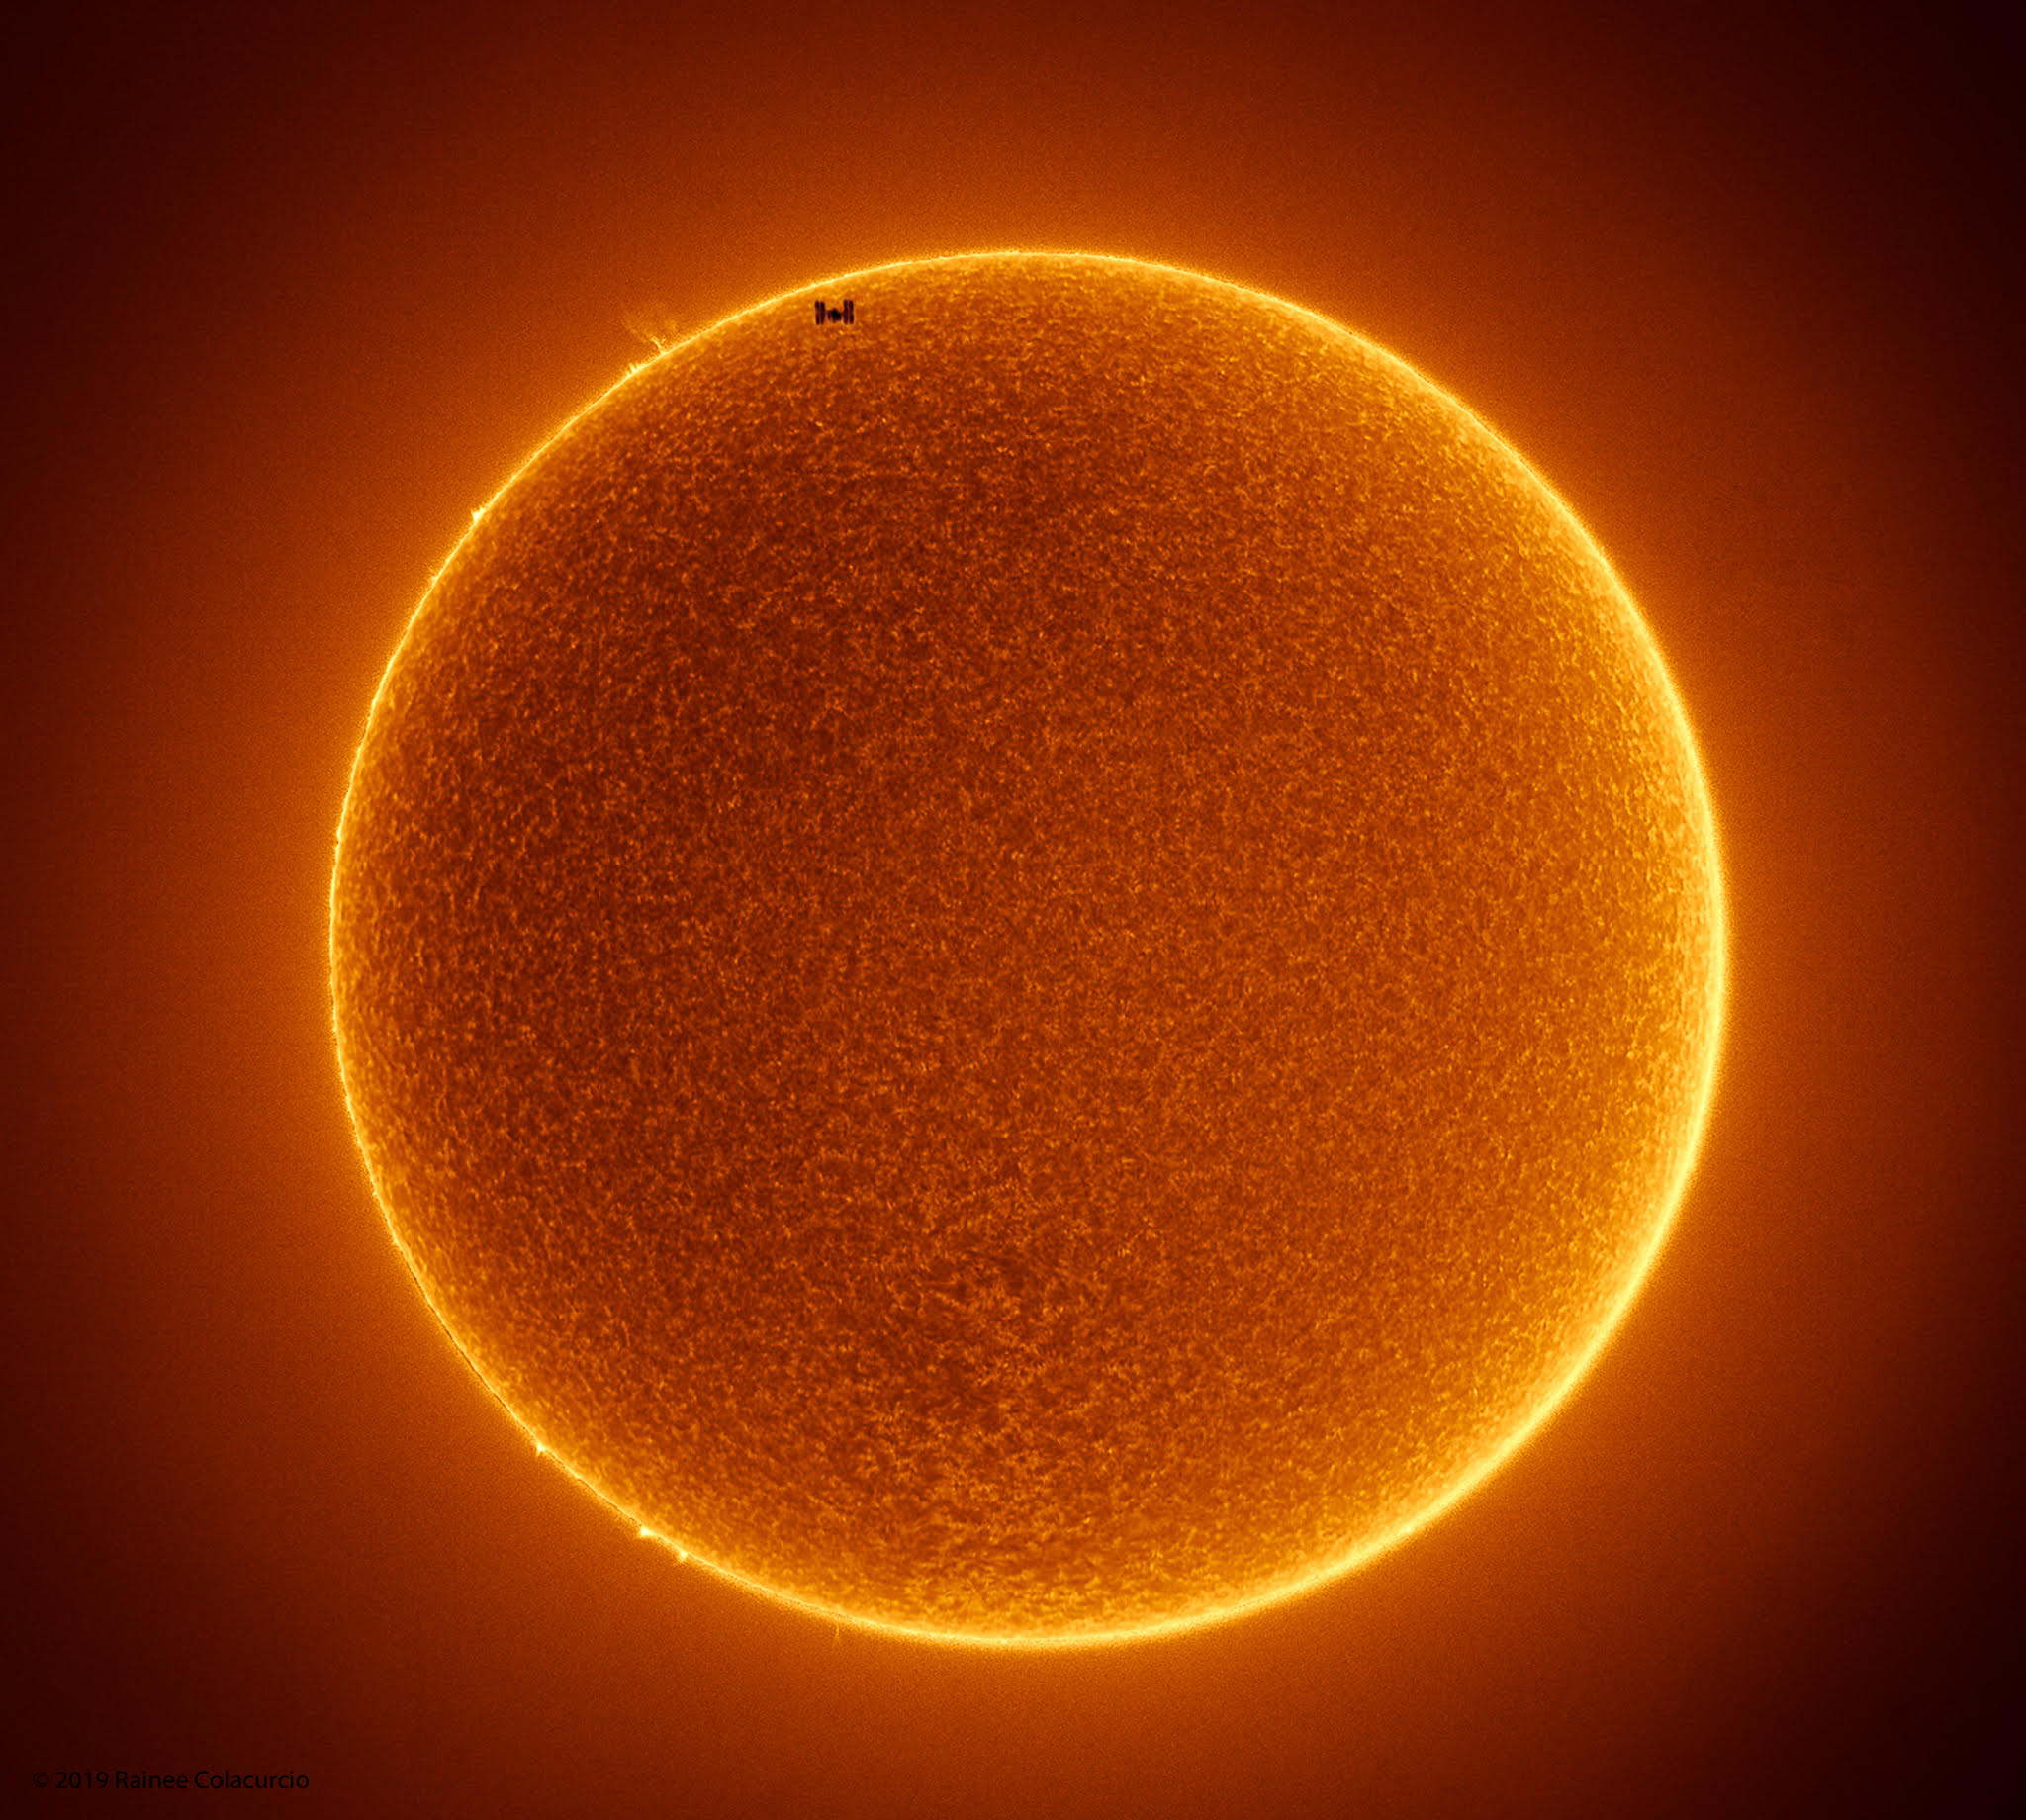 The Space Station Crosses a Spotless Sun